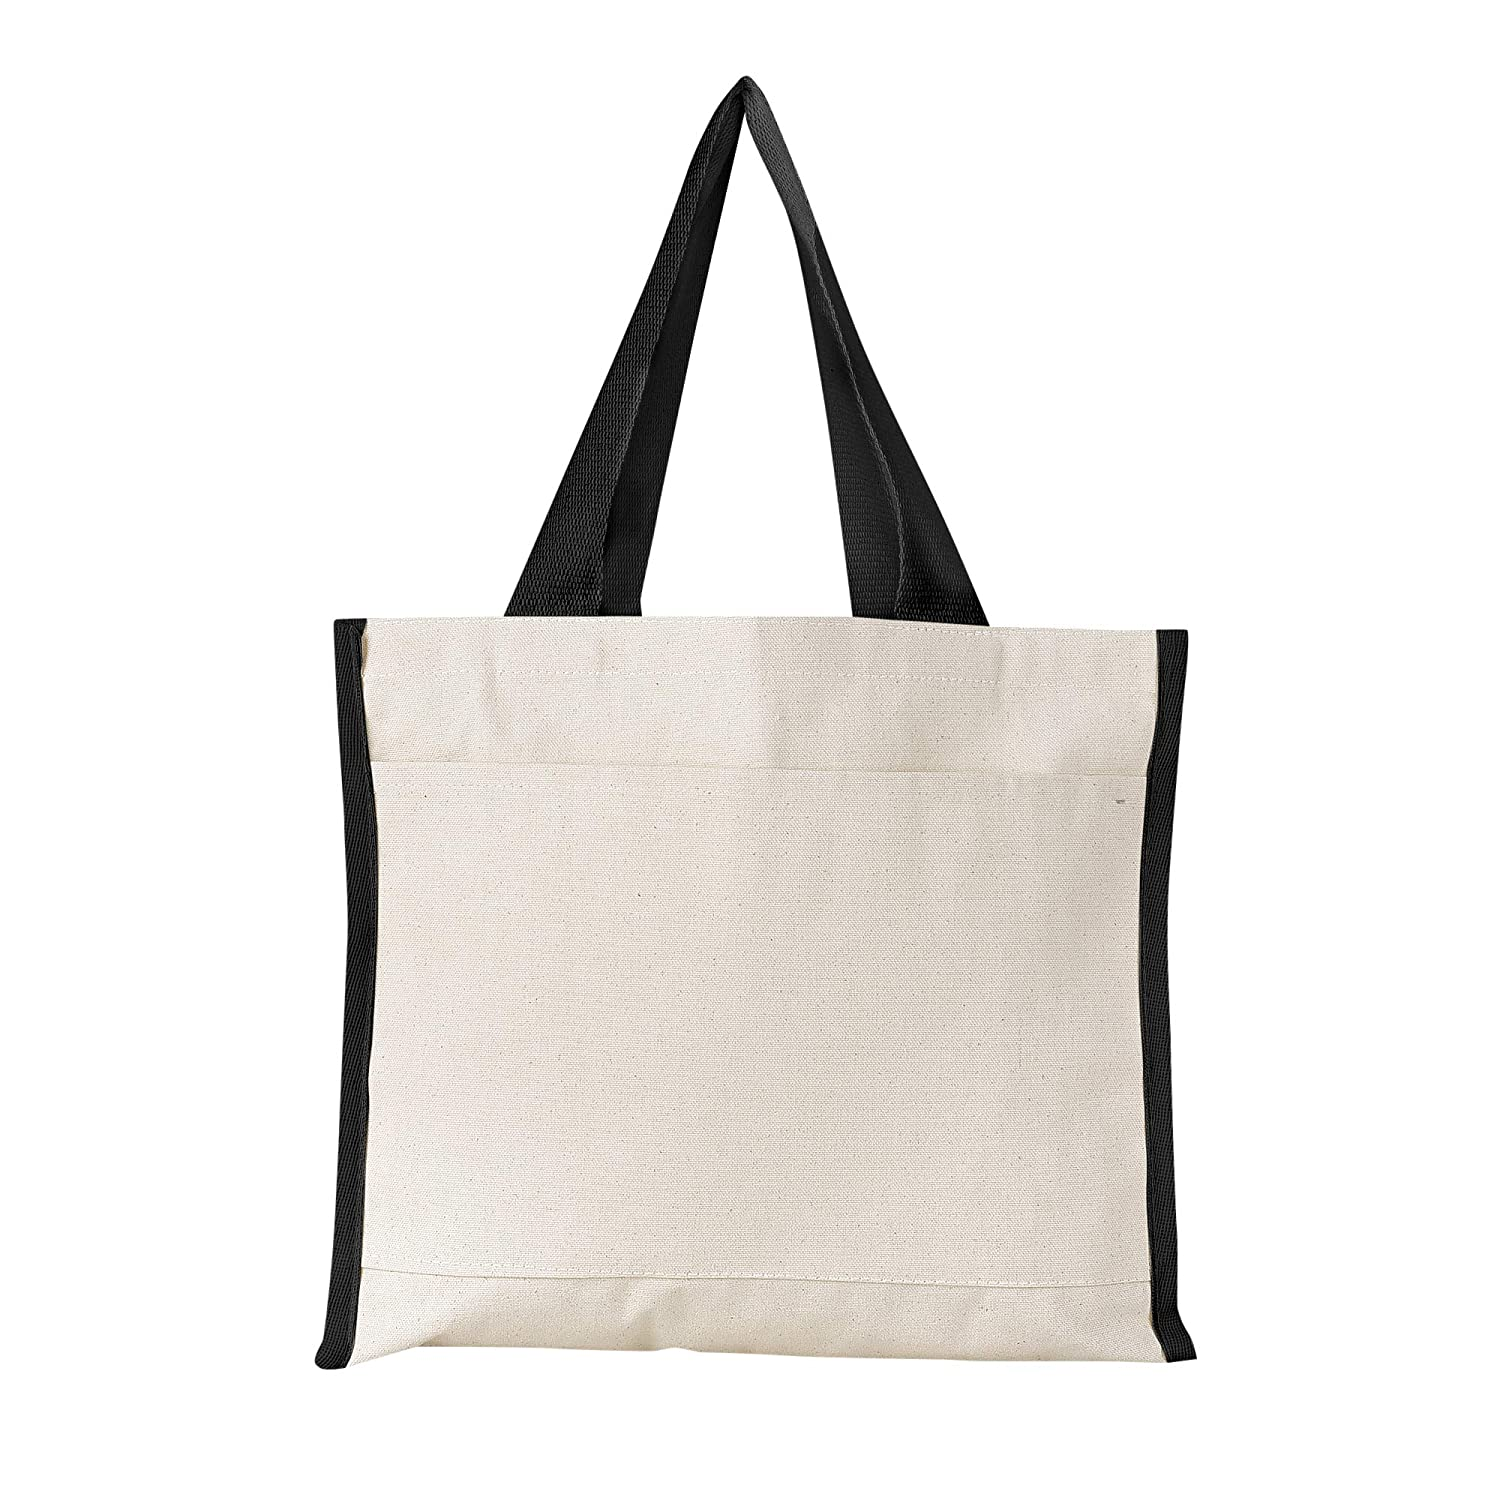 100%の保証 (6, Bags, Natural) - Heavy Canvas Canvas Reusable Wholesale Tote Bags with Front Pocket, Side and Bottom Gussets, Fancy Looking Plain Tote Bags, 100% Natural Canvas Strong Wholesale Tote Bags by BagzDepot (6, Natural) B06XDZ198M ブラック ブラック|6, RindaRinda:5e635b63 --- diesel-motor.pl